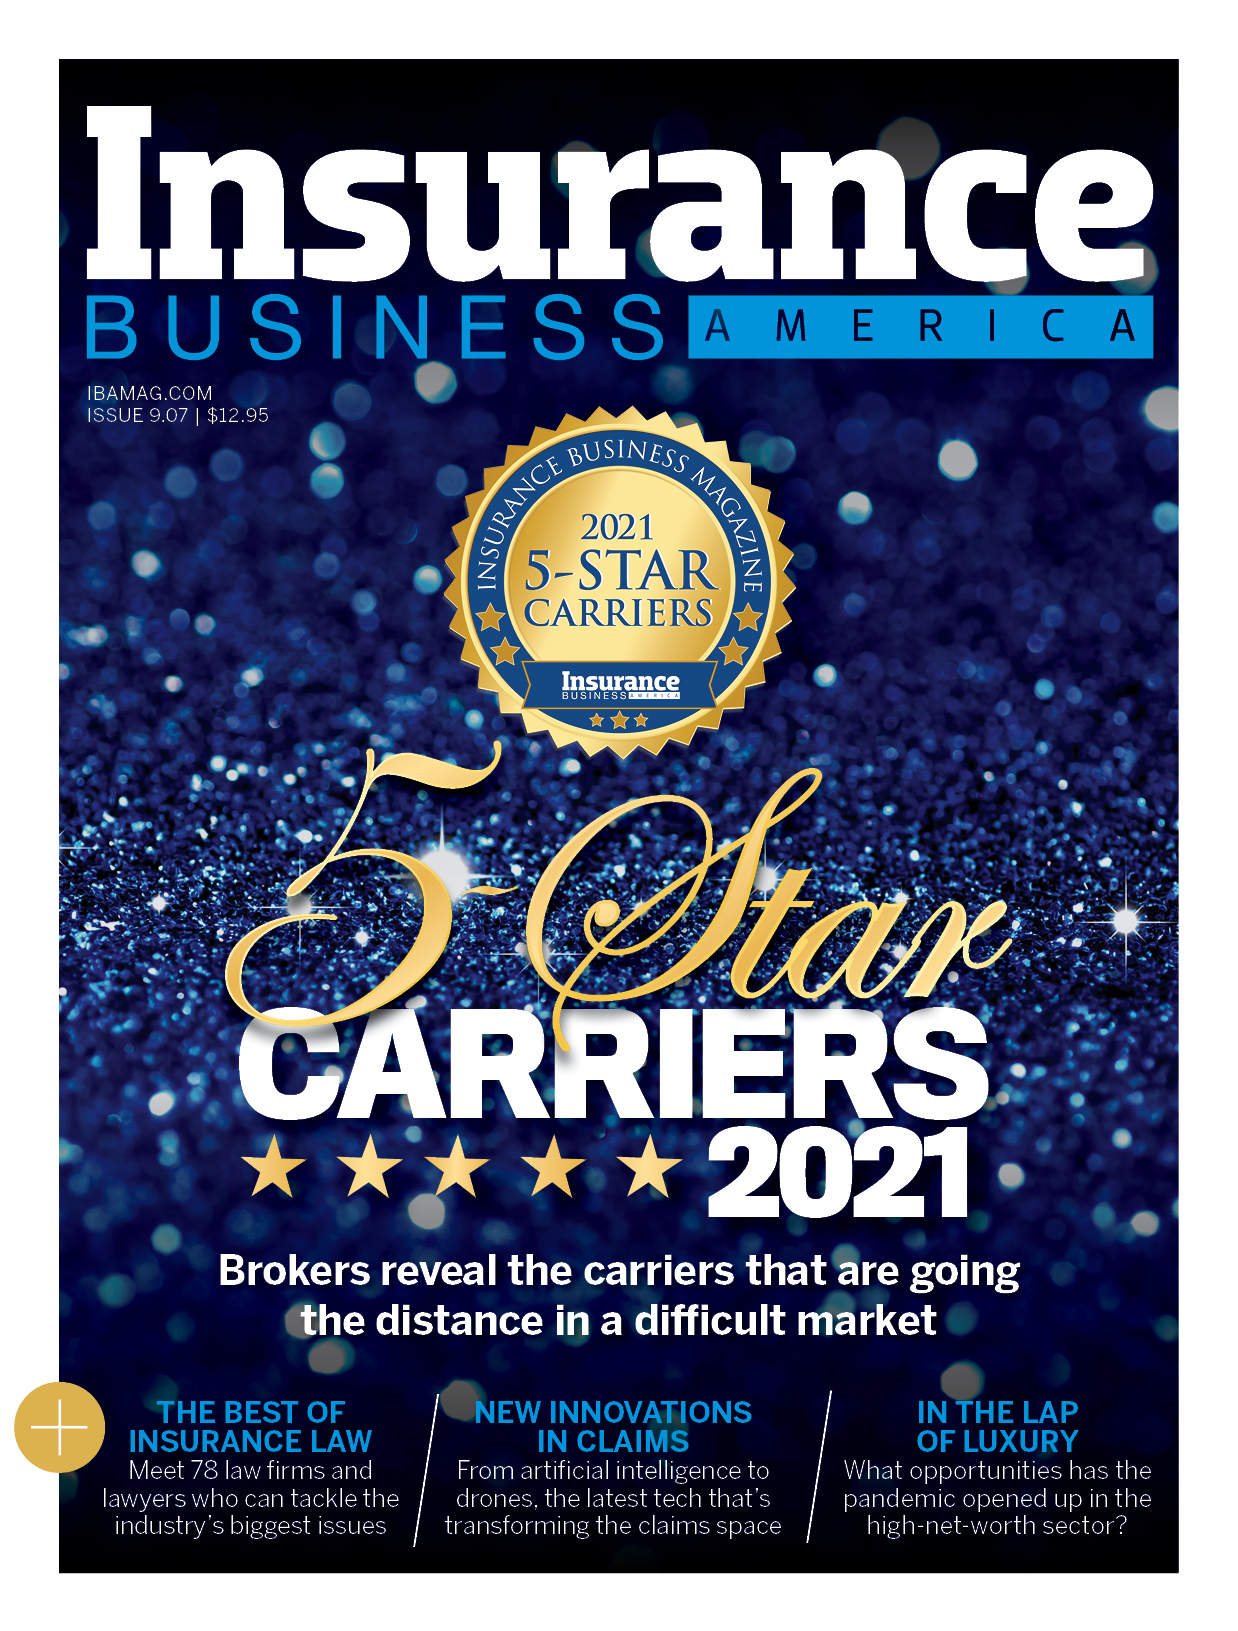 Insurance Business America issue 9.07